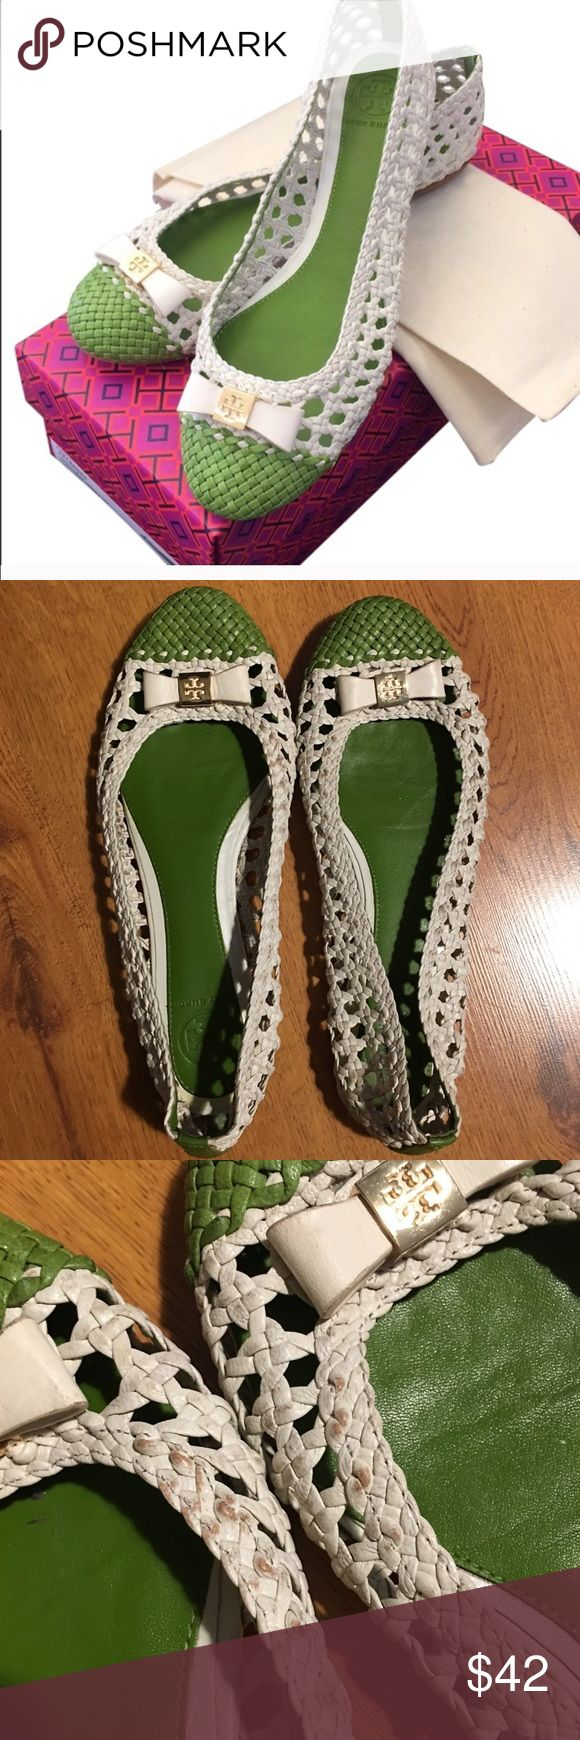 Tory Burch Carlyle Woven Leather Flat Bows Super cute Flats from Tory Burch with green and white woven leather and bows with logo on top. Good used condition, worn only a handful of times, but does have some wear showing on the white leather (see photos) and a piece of the edging on the back right heel green strip is peeling - otherwise plenty of life left. Tory Burch Shoes Flats & Loafers